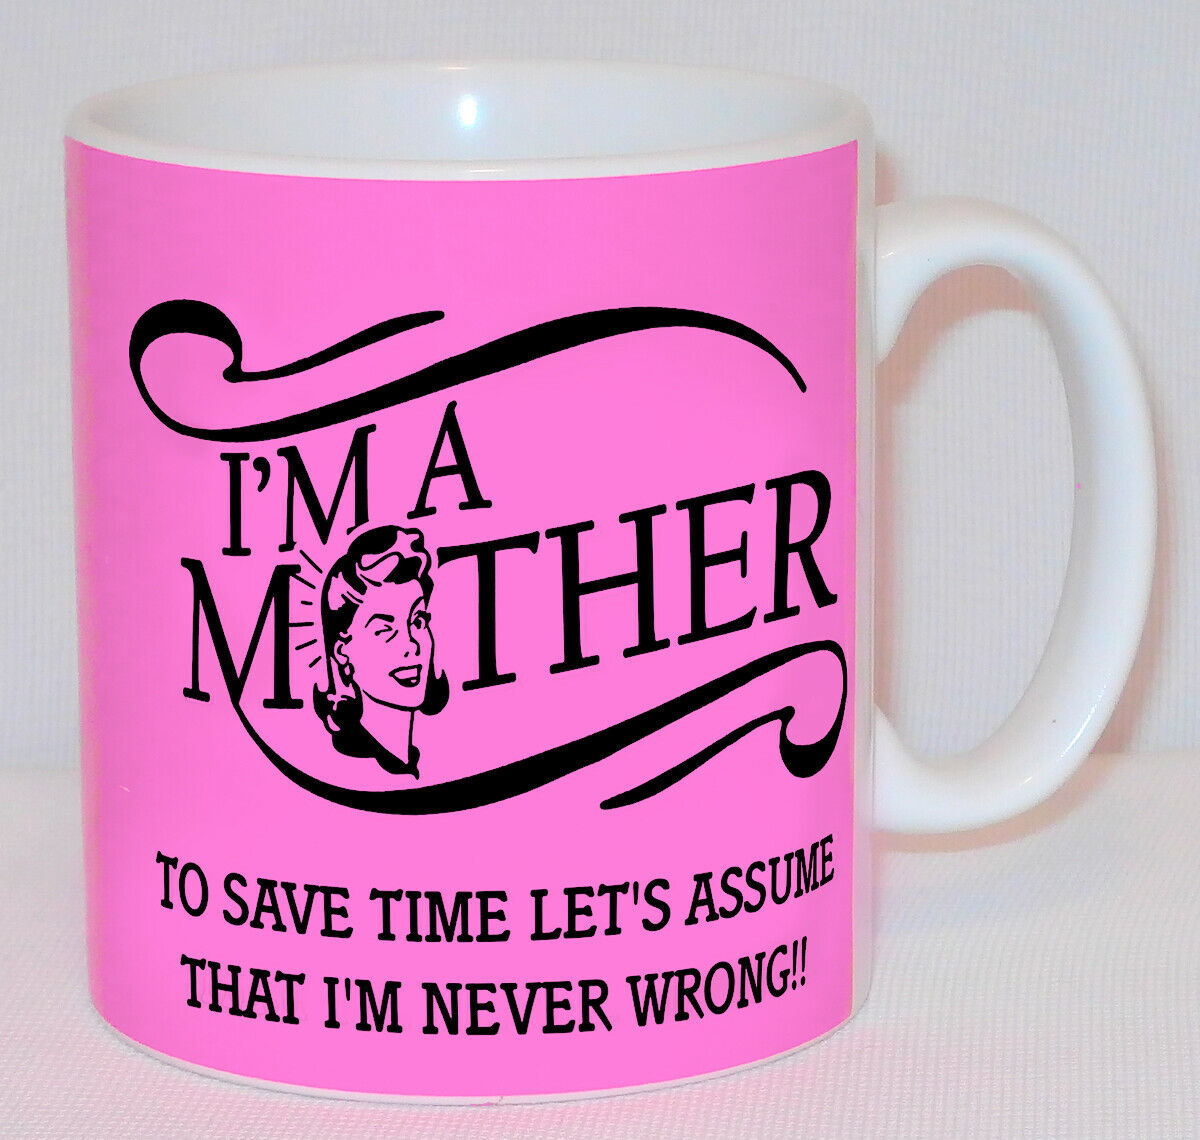 I'm A Mother Assume I'm Never Wrong Mug Can PERSONALISE Great Mother's Day Gift image 2